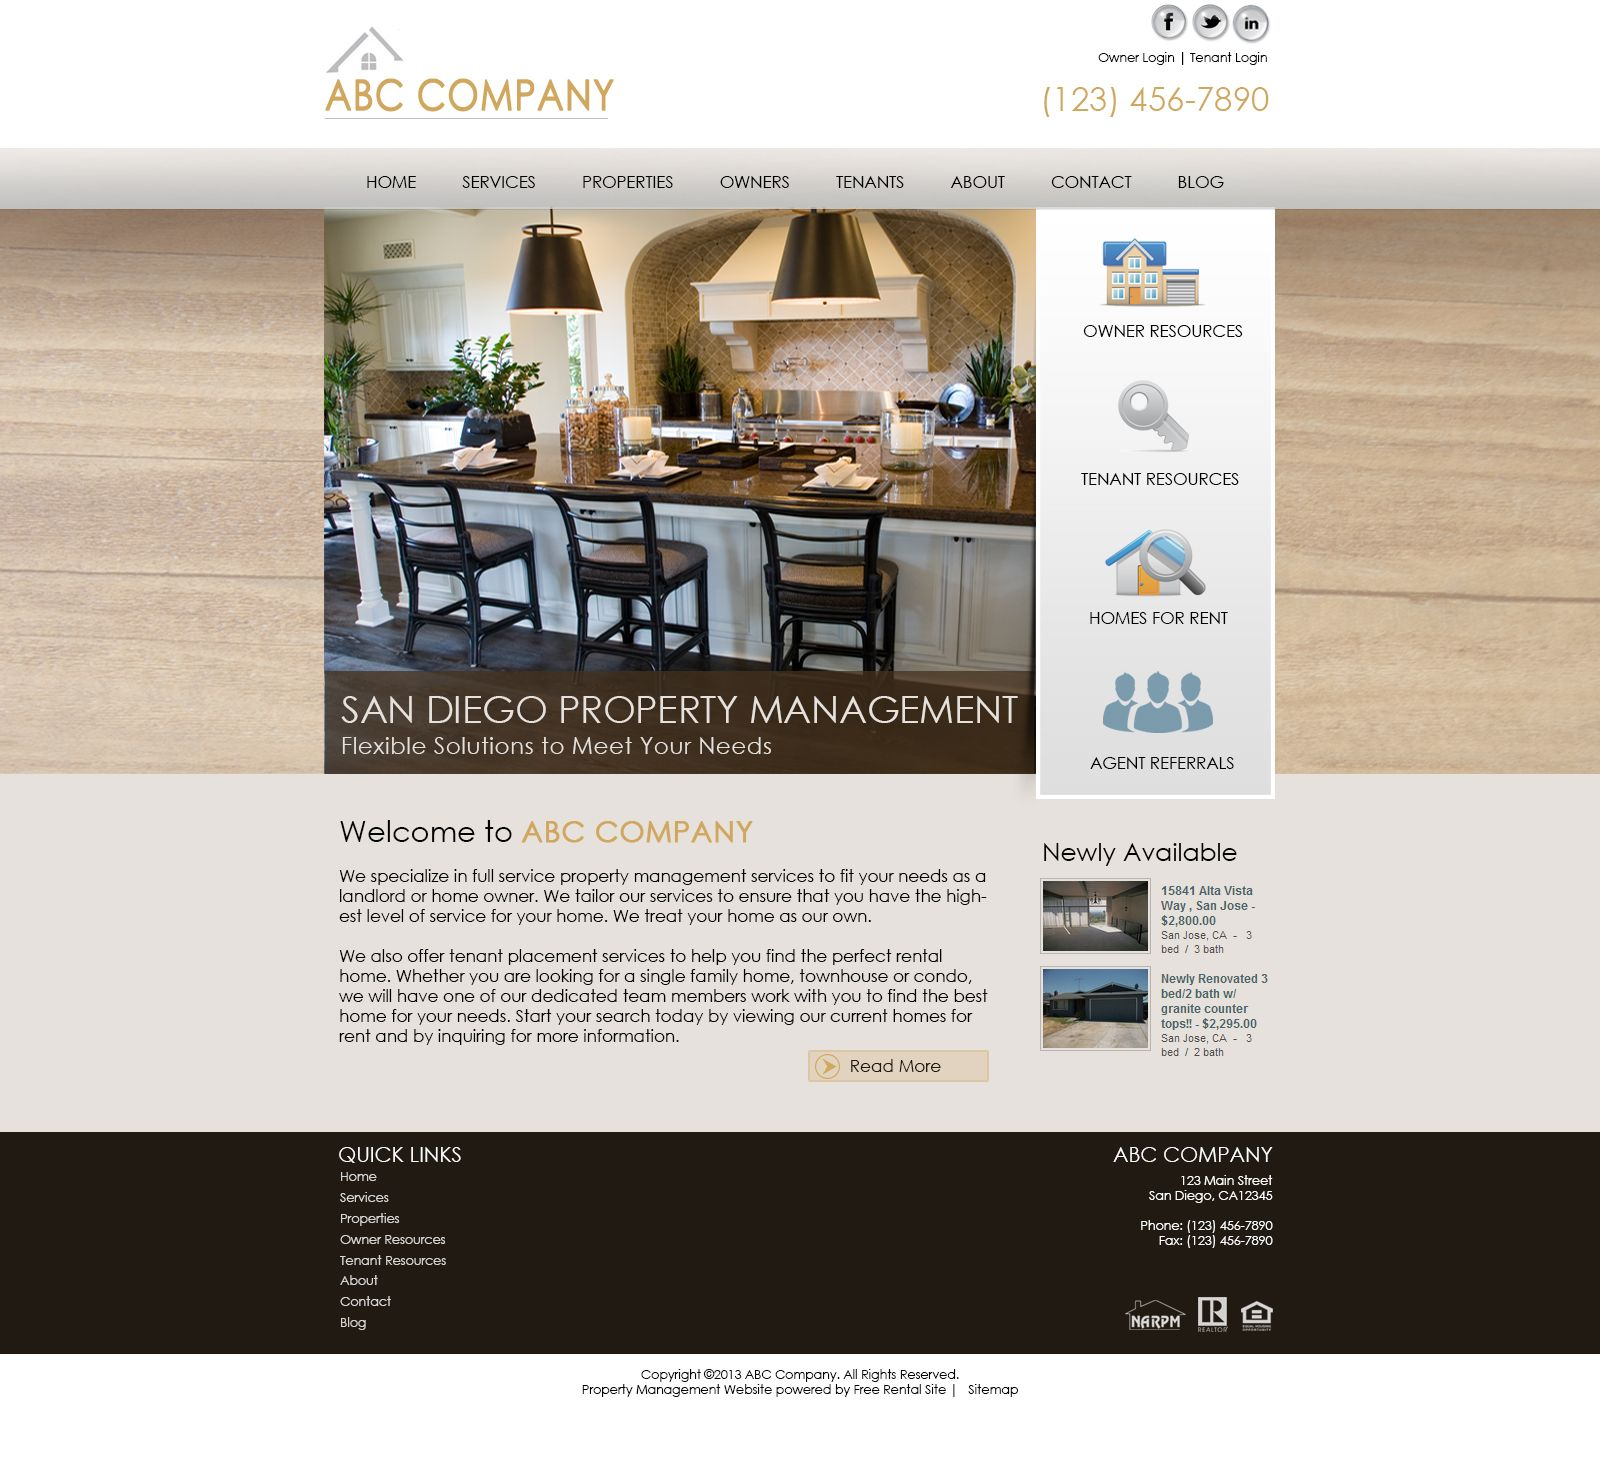 PMW Property Manager Websites Smart Site Design. Be the first to use ...